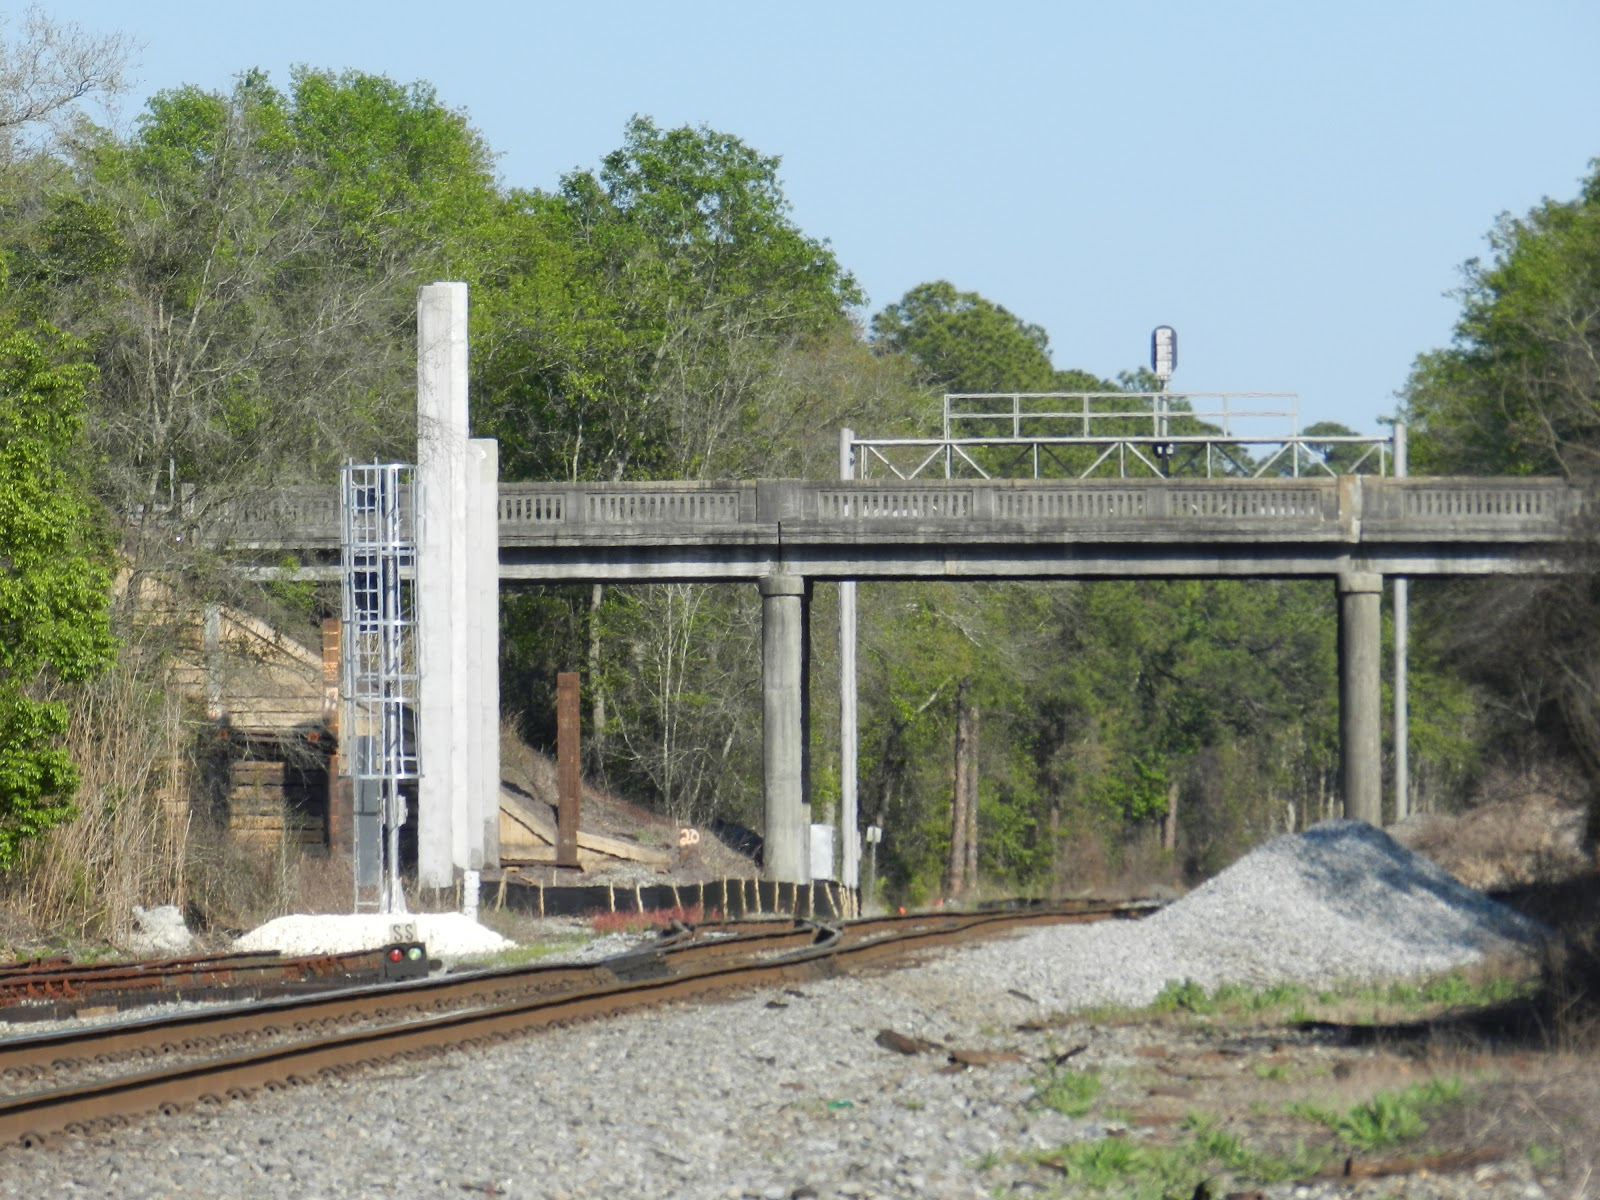 Trains and Trails of Nassau County FLA: New signal upgrades